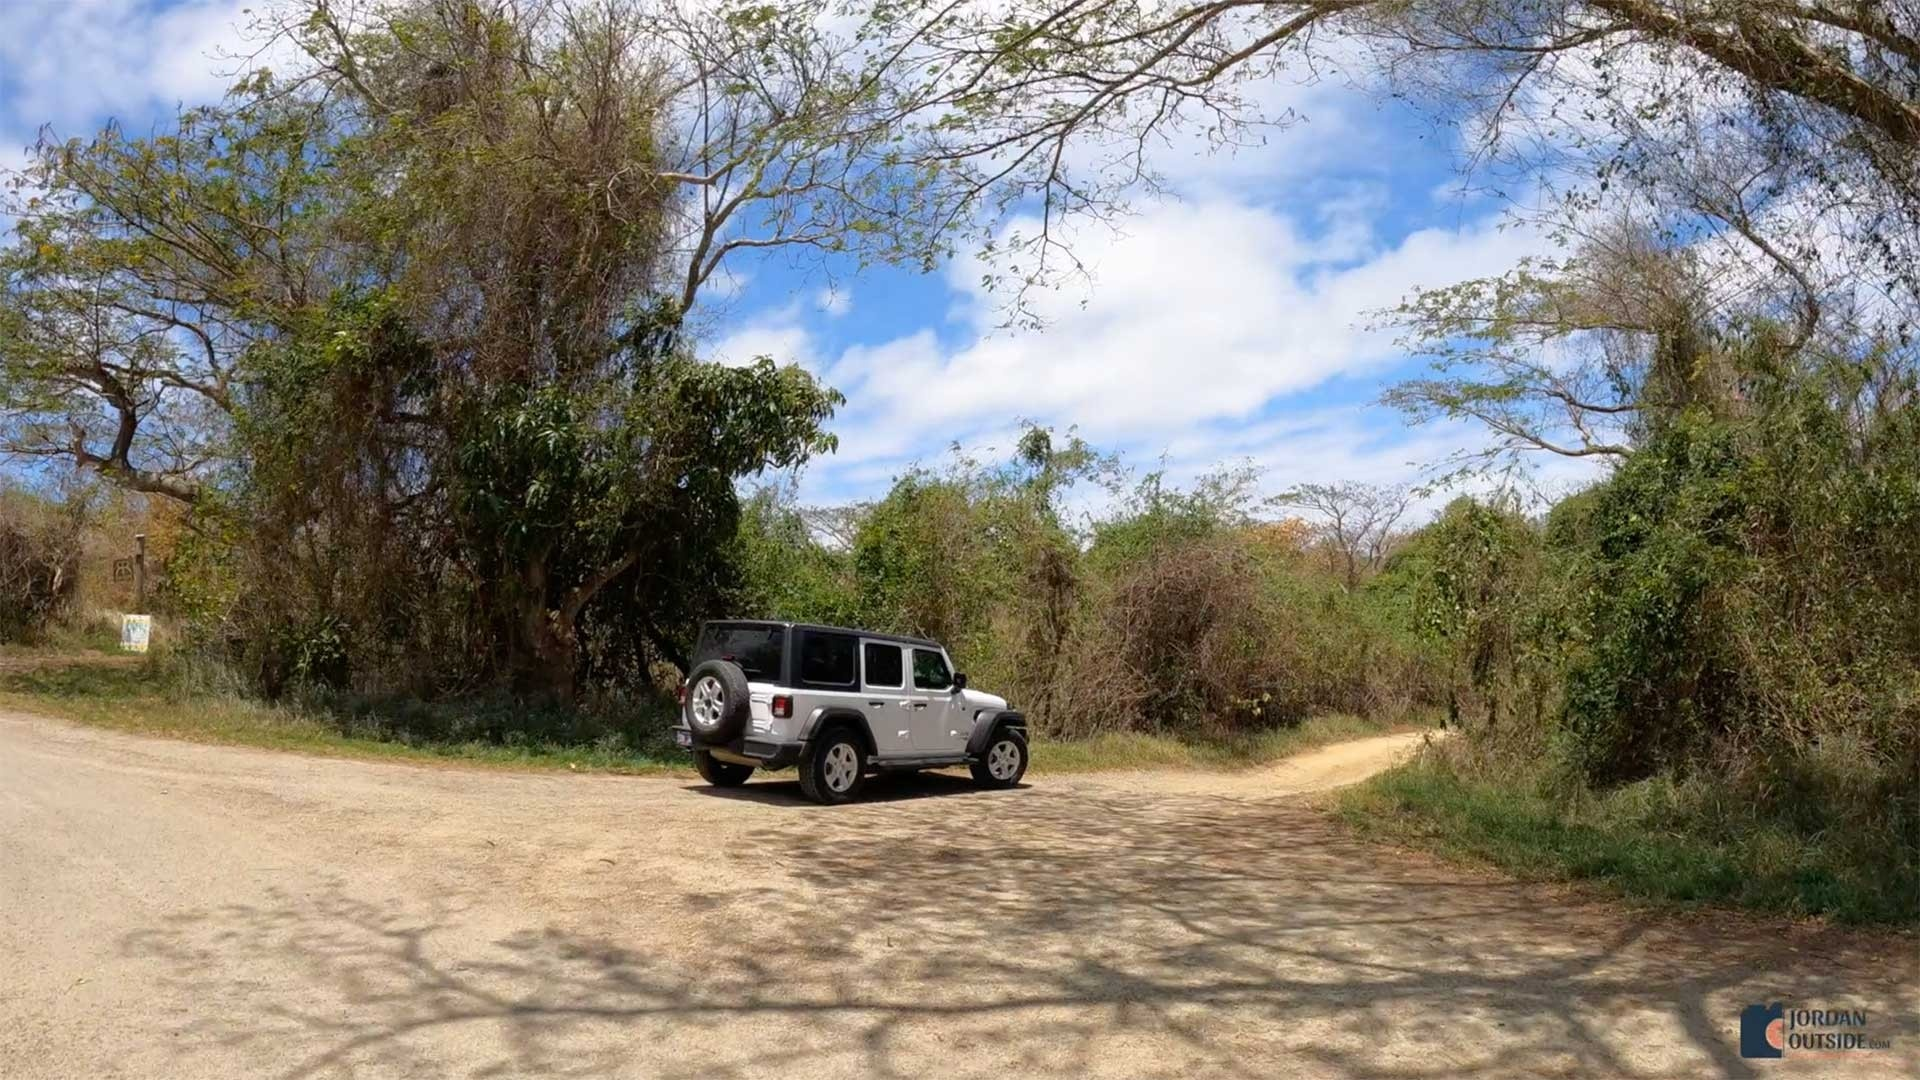 The 2nd turnoff to Annaly Bay